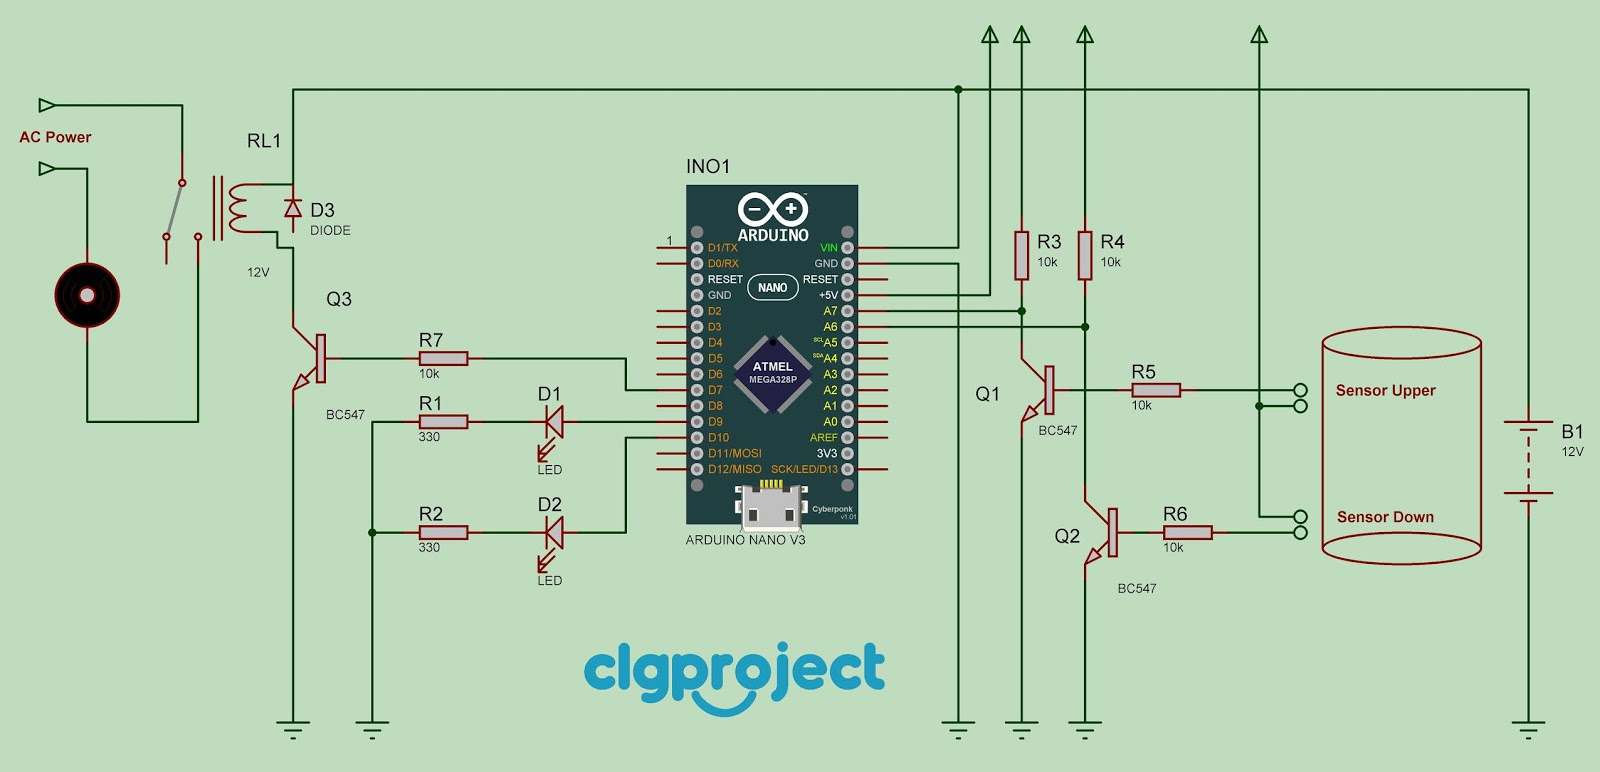 Automatic Water Pump Controller Using Arduino Clgproject Level Sensor Indicator Is Dipped In And Lower One Not Basically It Possible So Should Be An Error The System